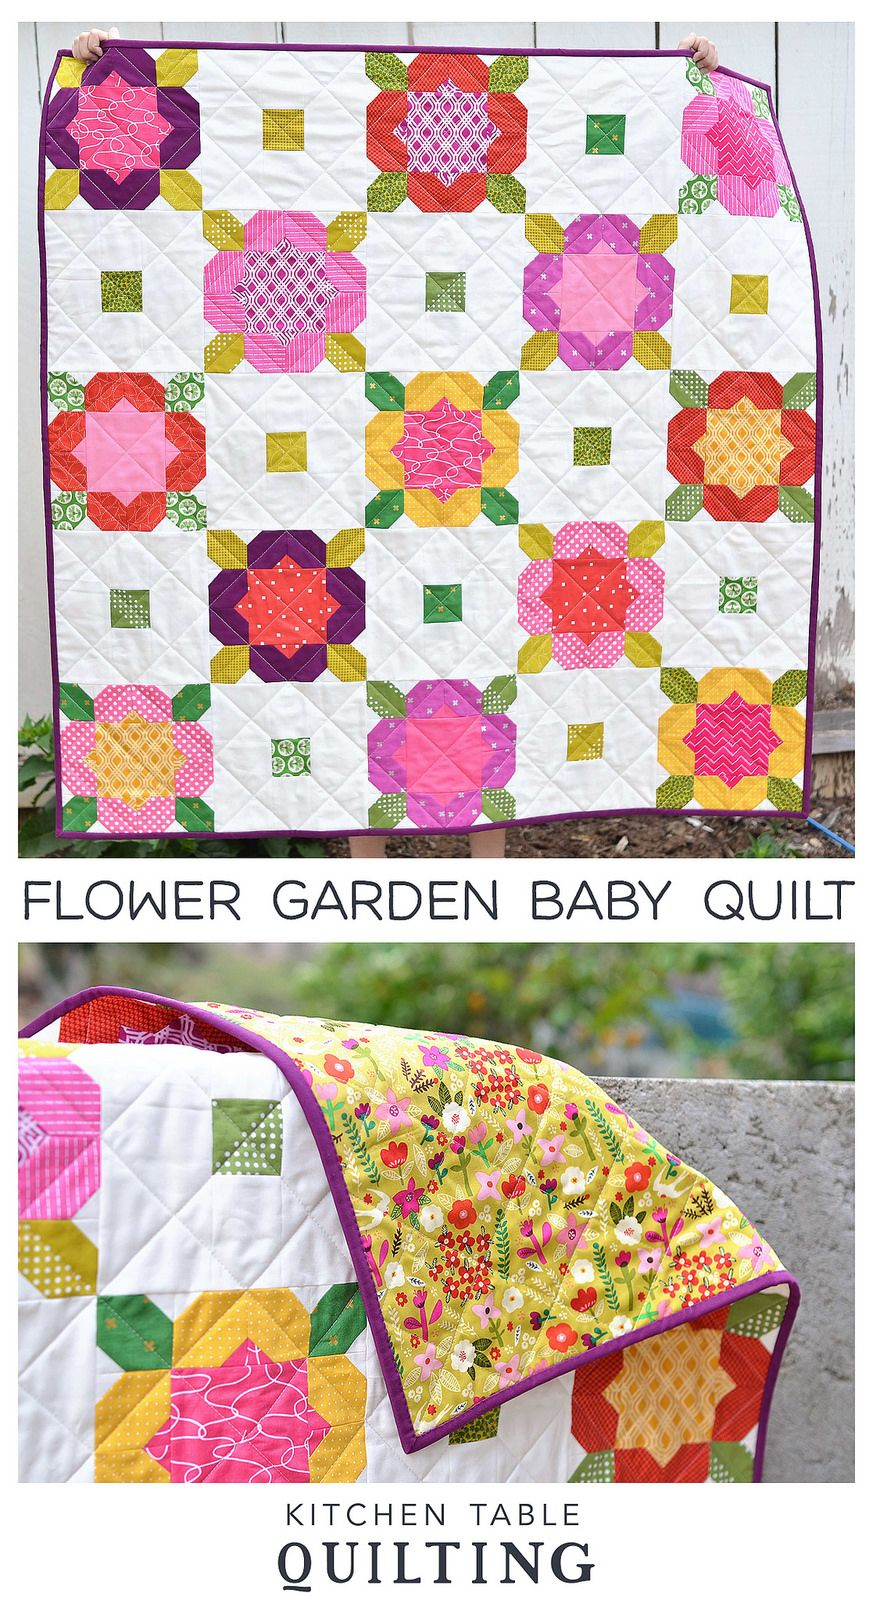 Flower Garden Quilt  Flower garden quilt, Garden quilt, Quilts